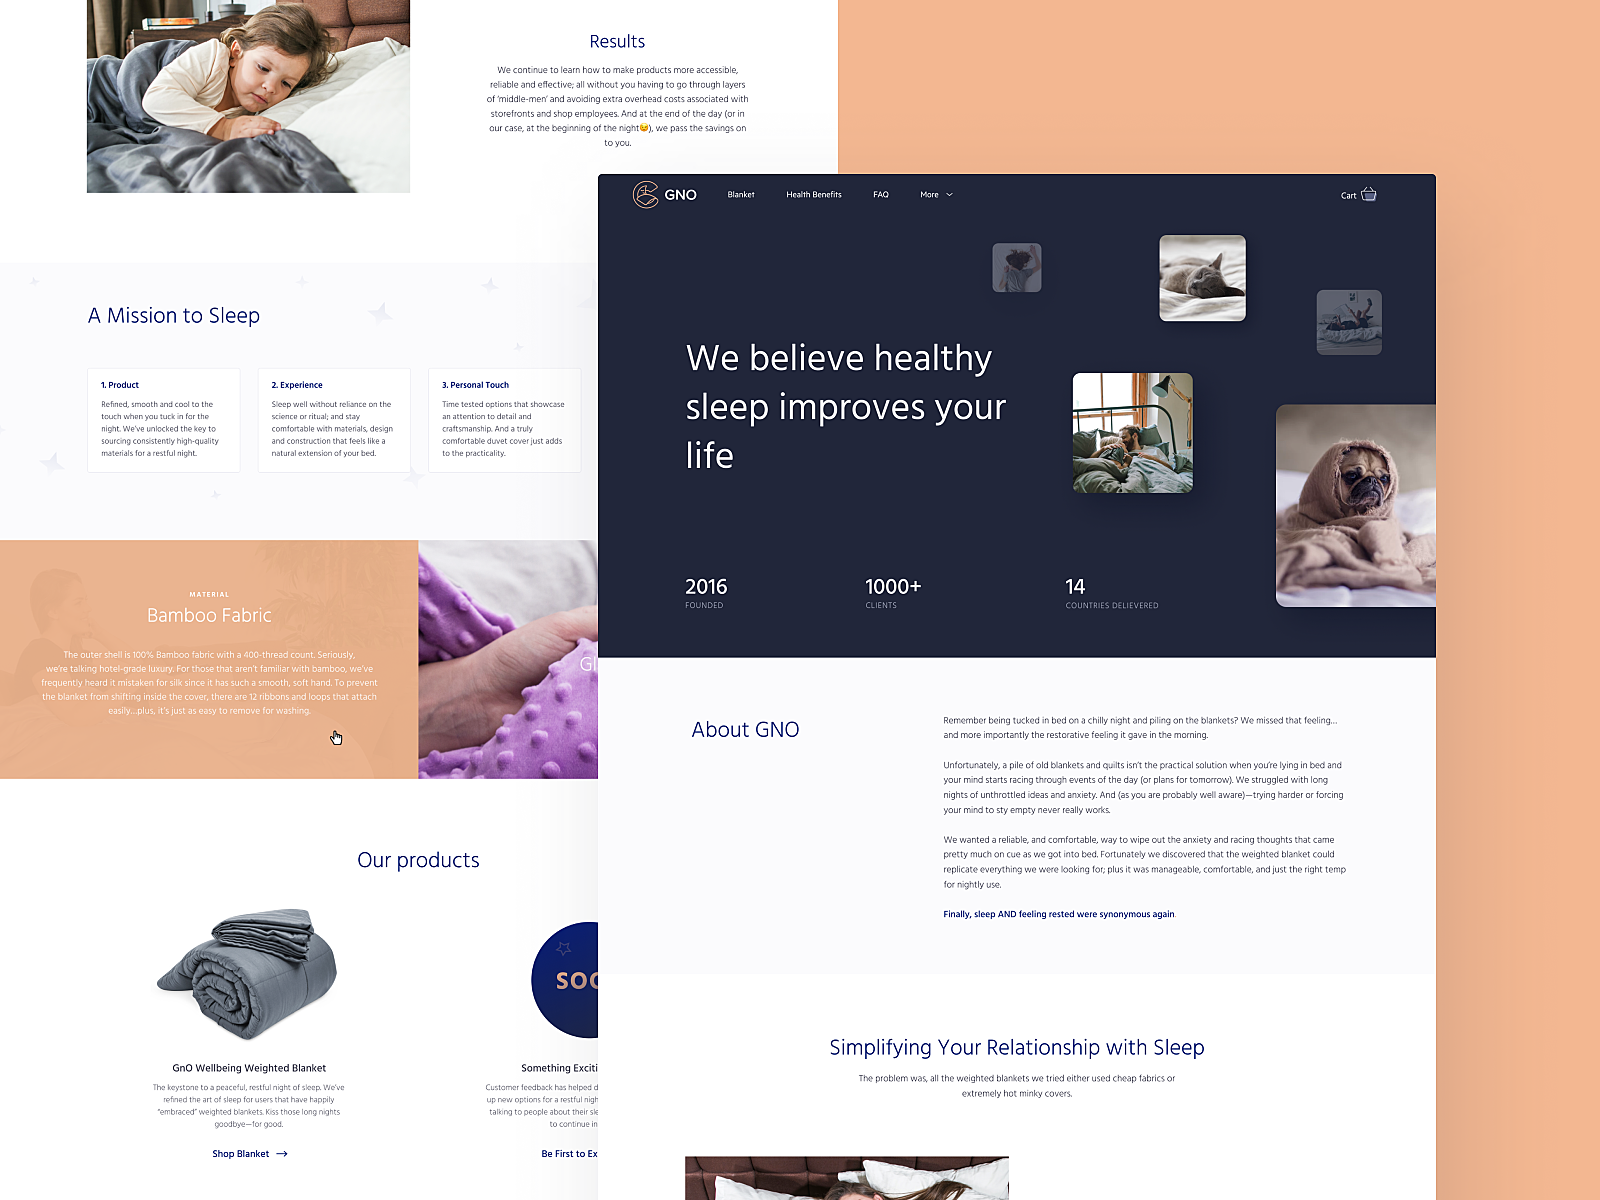 Web Design 16 Basic Types Of Web Pages In 2020 Web Design Web Design Trends Inspiration Web Design Trends